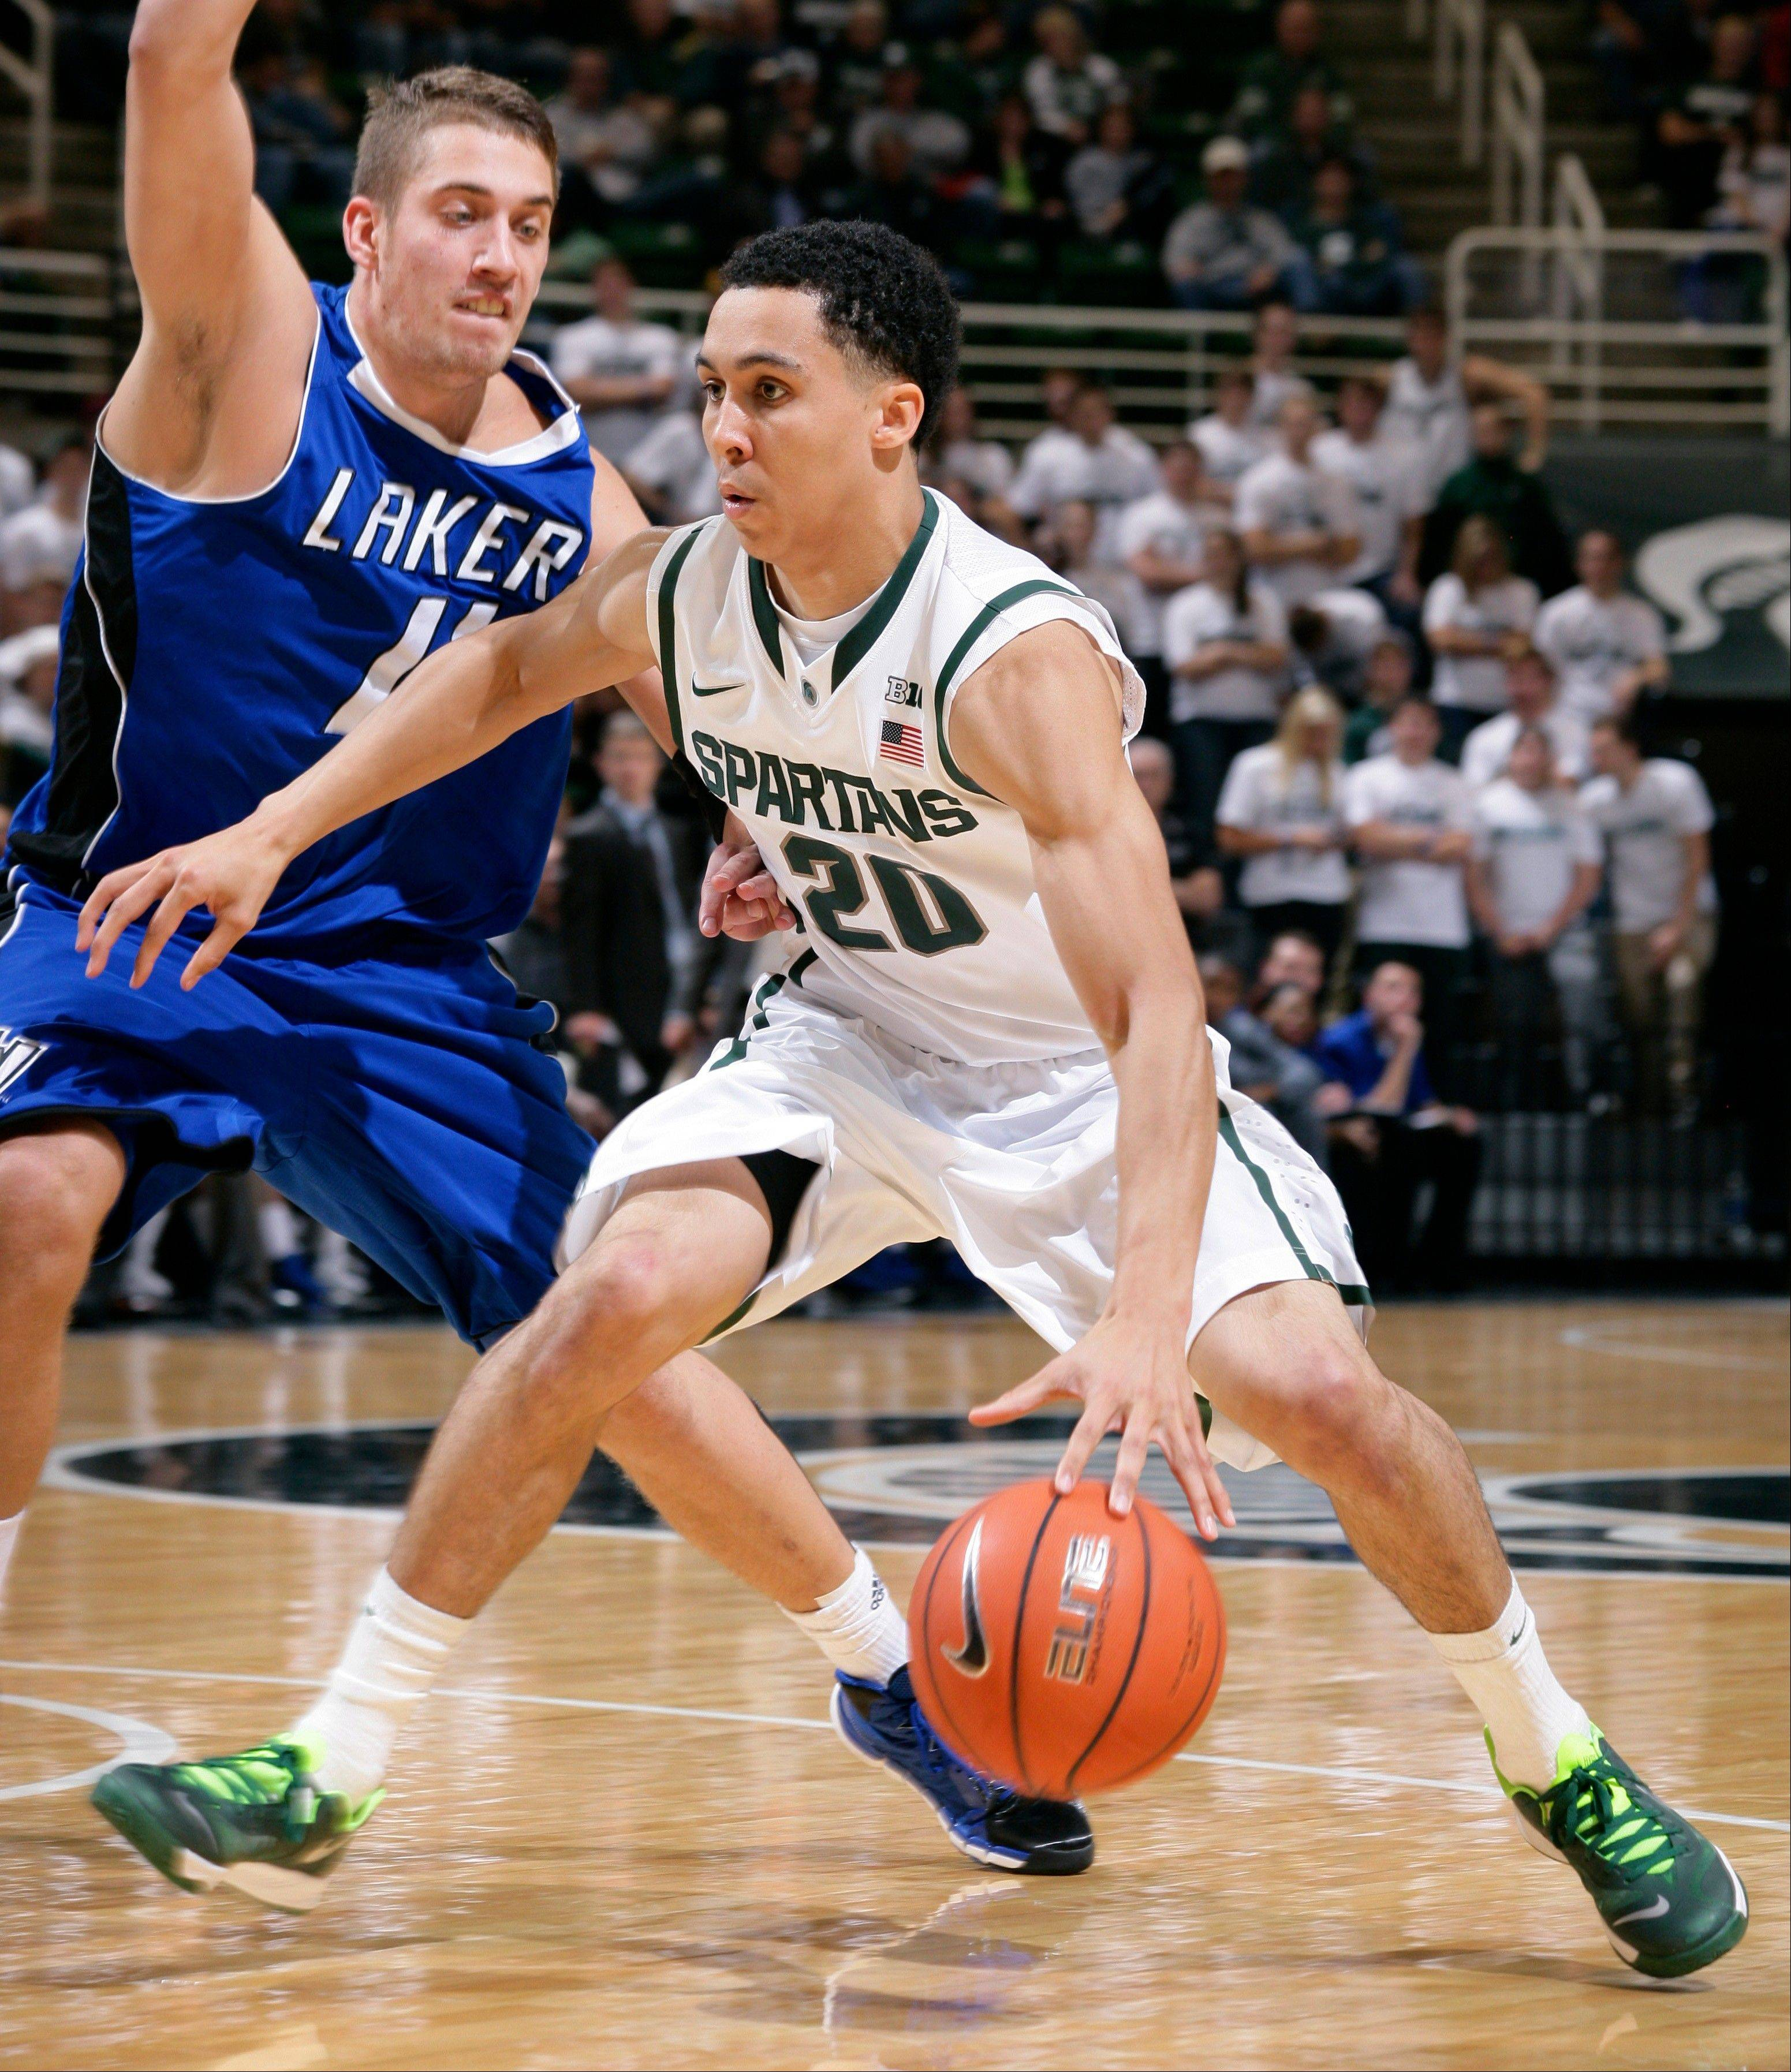 Michigan State's Travis Trice drives against Grand Valley State's Ernijs Ansons during an exhibition game on Tuesday in East Lansing, Mich. The Spartans are the preseason pick to win the Big Ten.